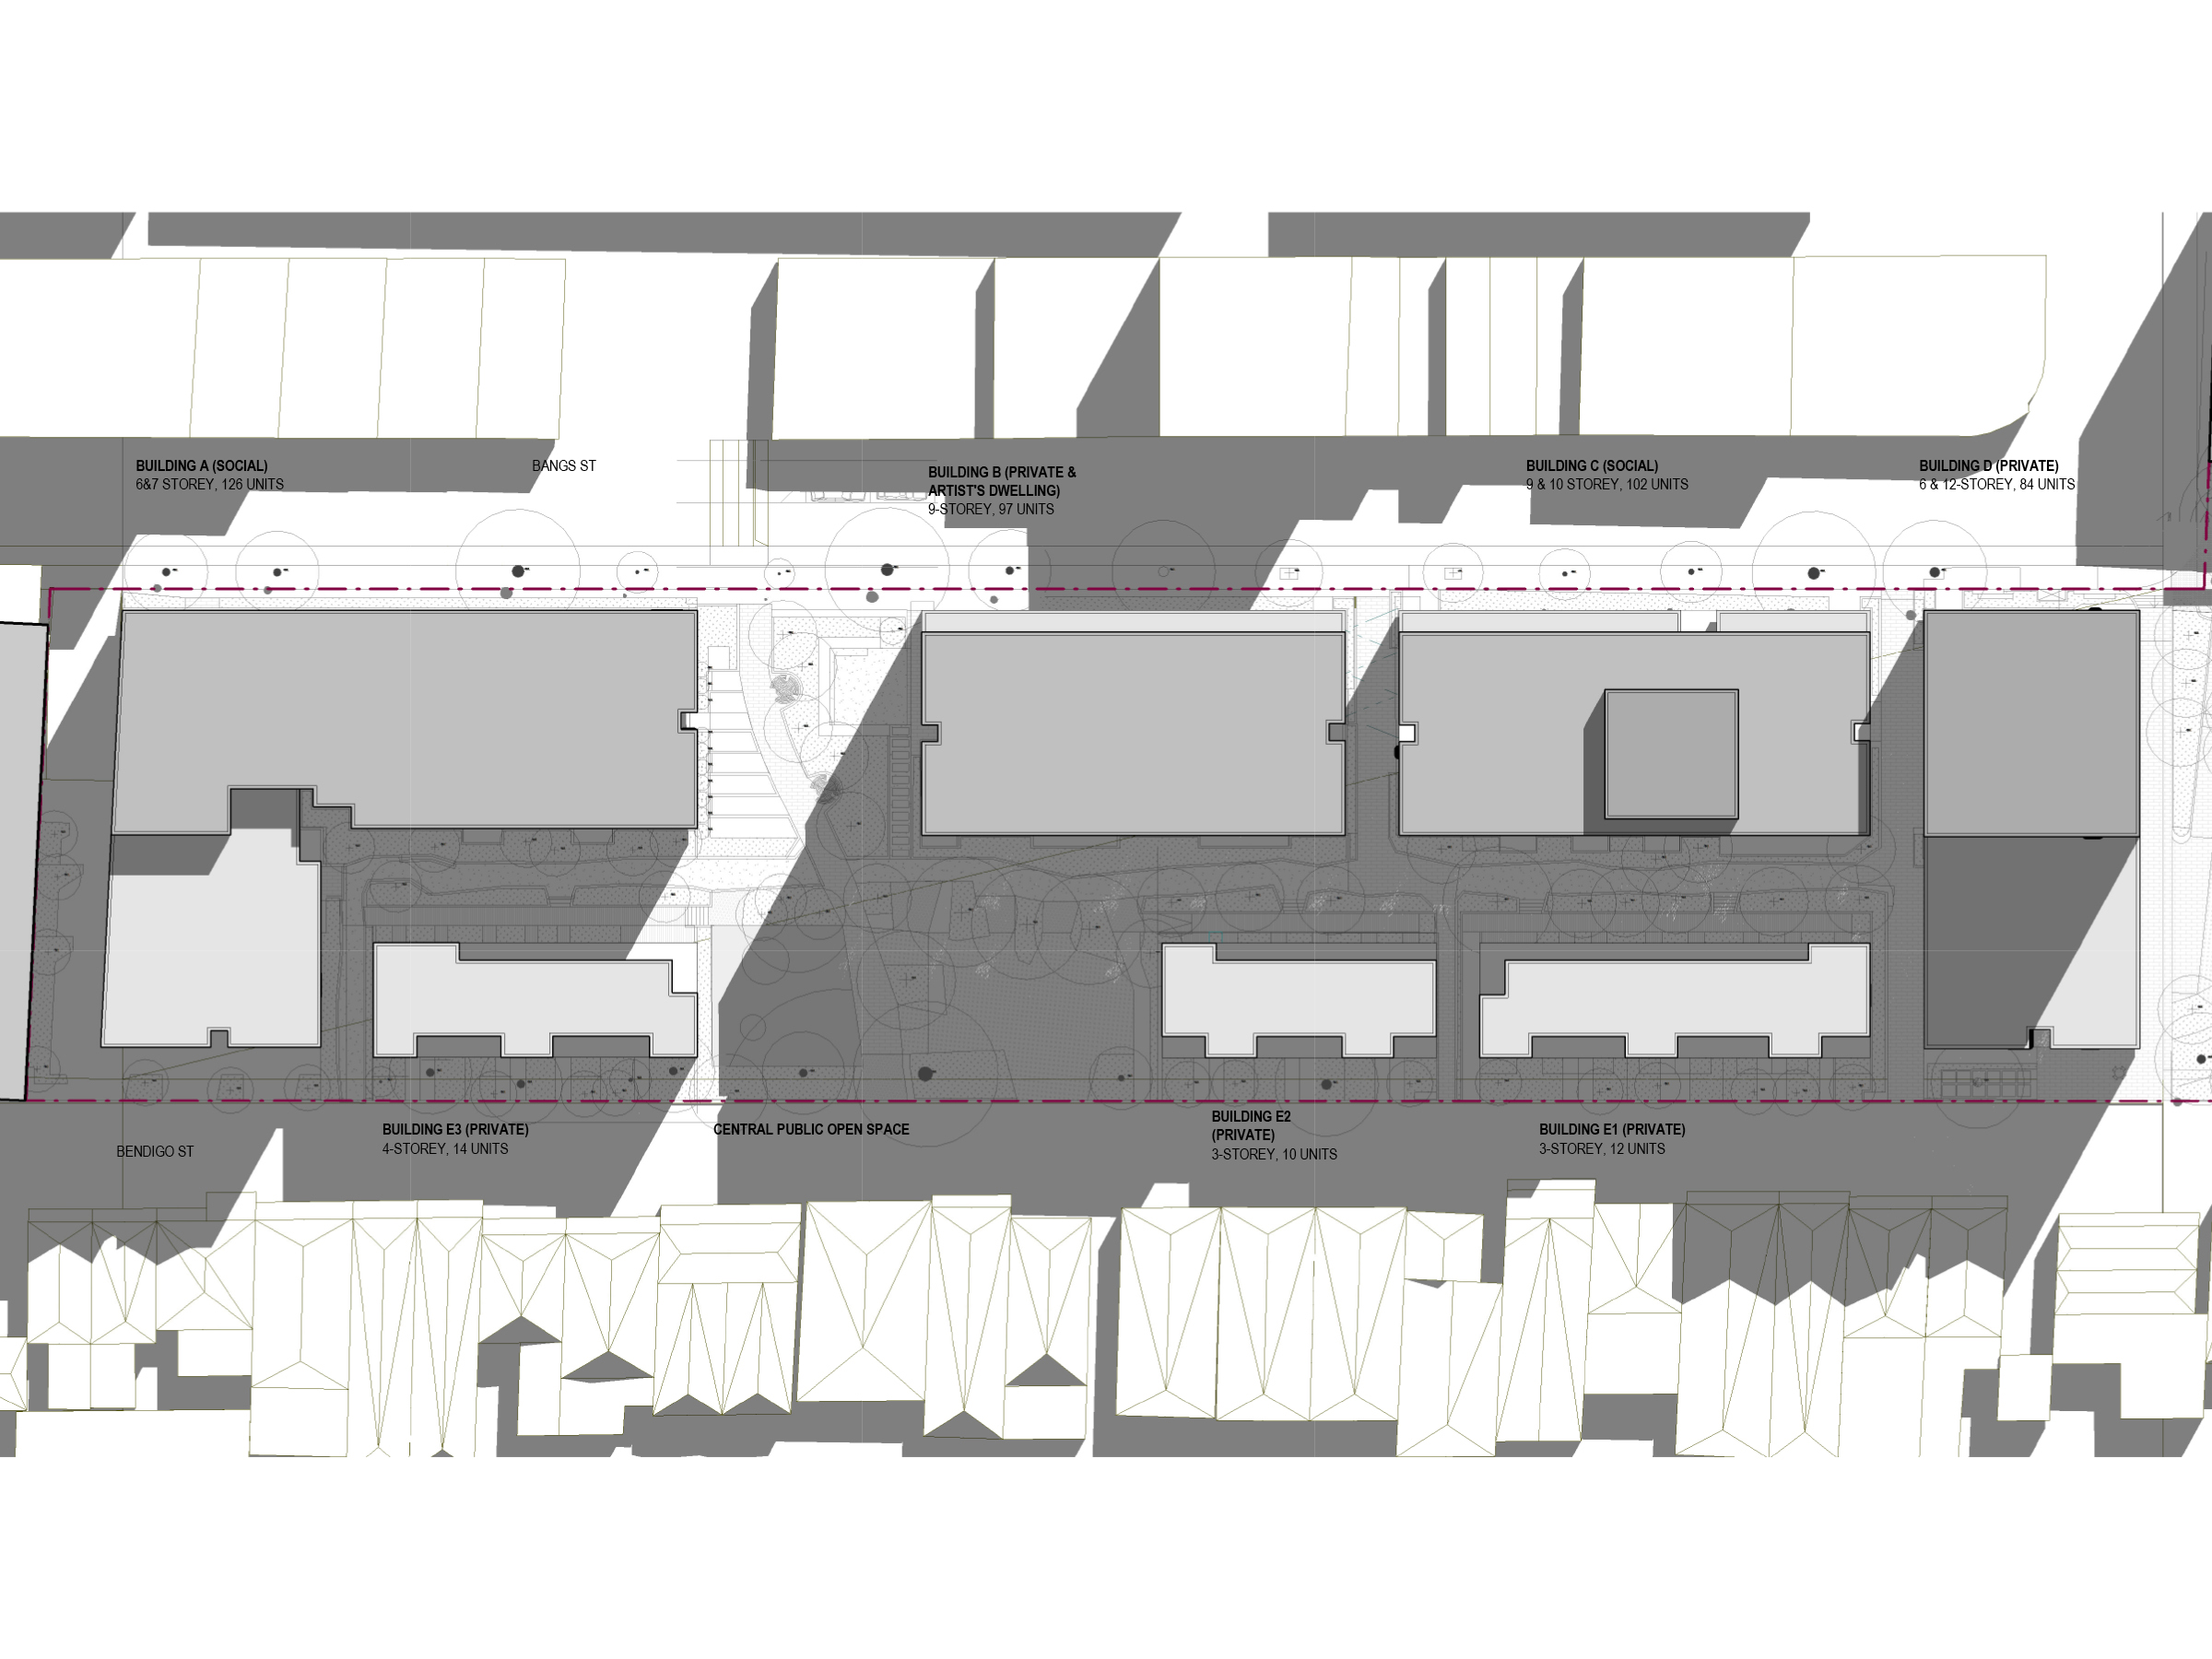 Diagram showing the shadows created by the new development in September at 3pm